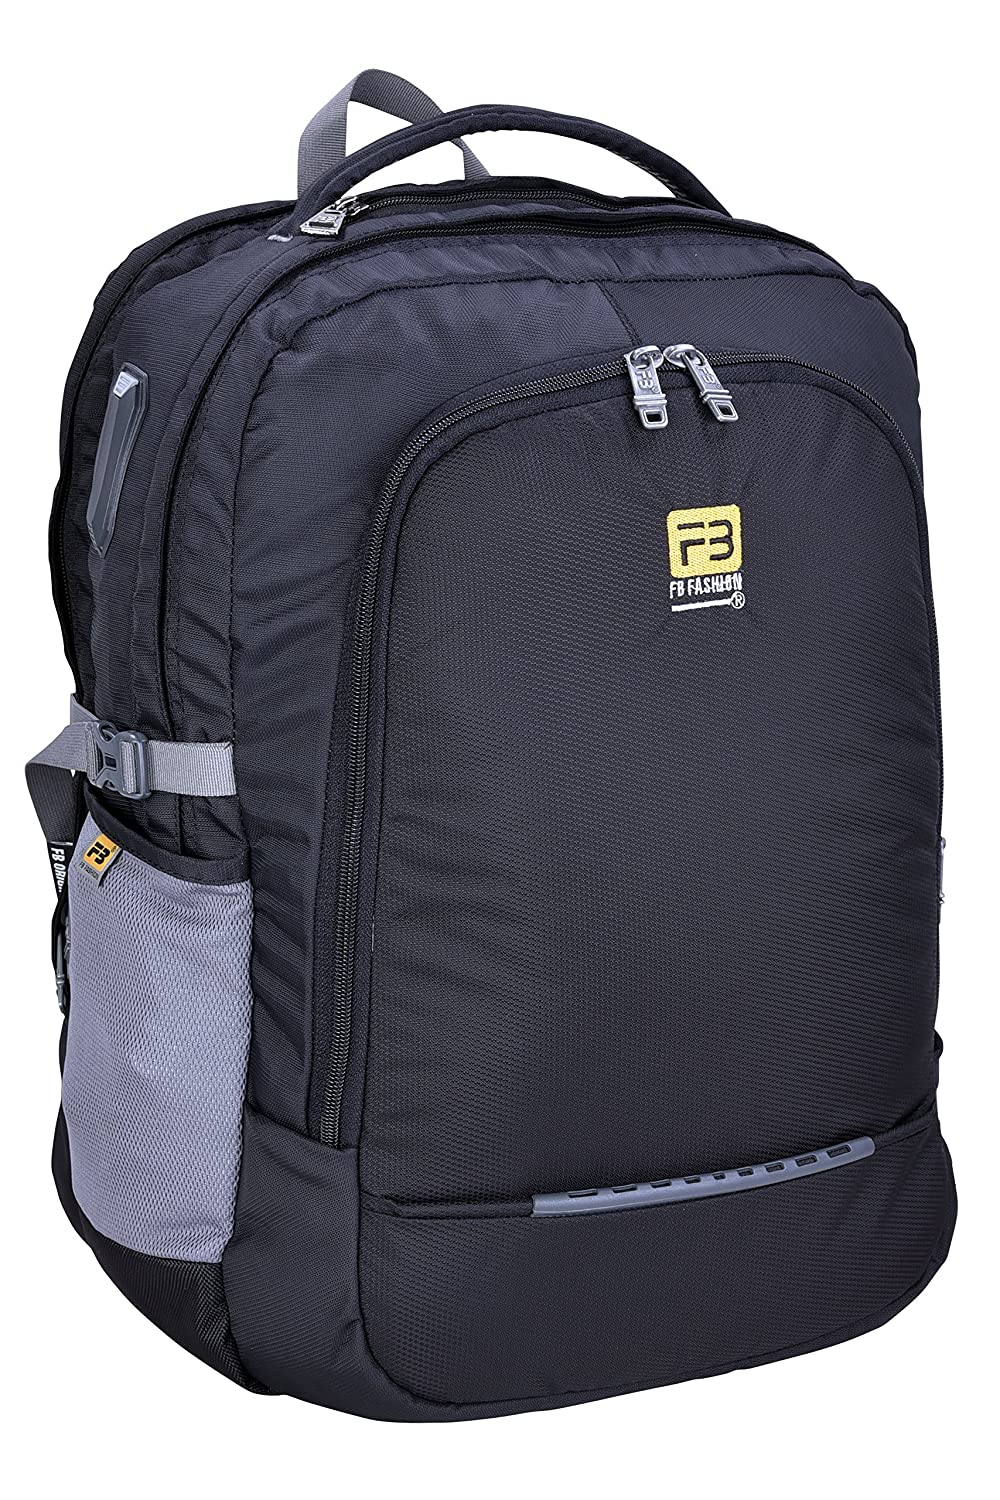 34449e3d082b FB Fashion Bags Polyester 42 Ltr Black   Grey Laptop Backpack - Buy FB  Fashion Bags Polyester 42 Ltr Black   Grey Laptop Backpack Online at Low  Price in ...